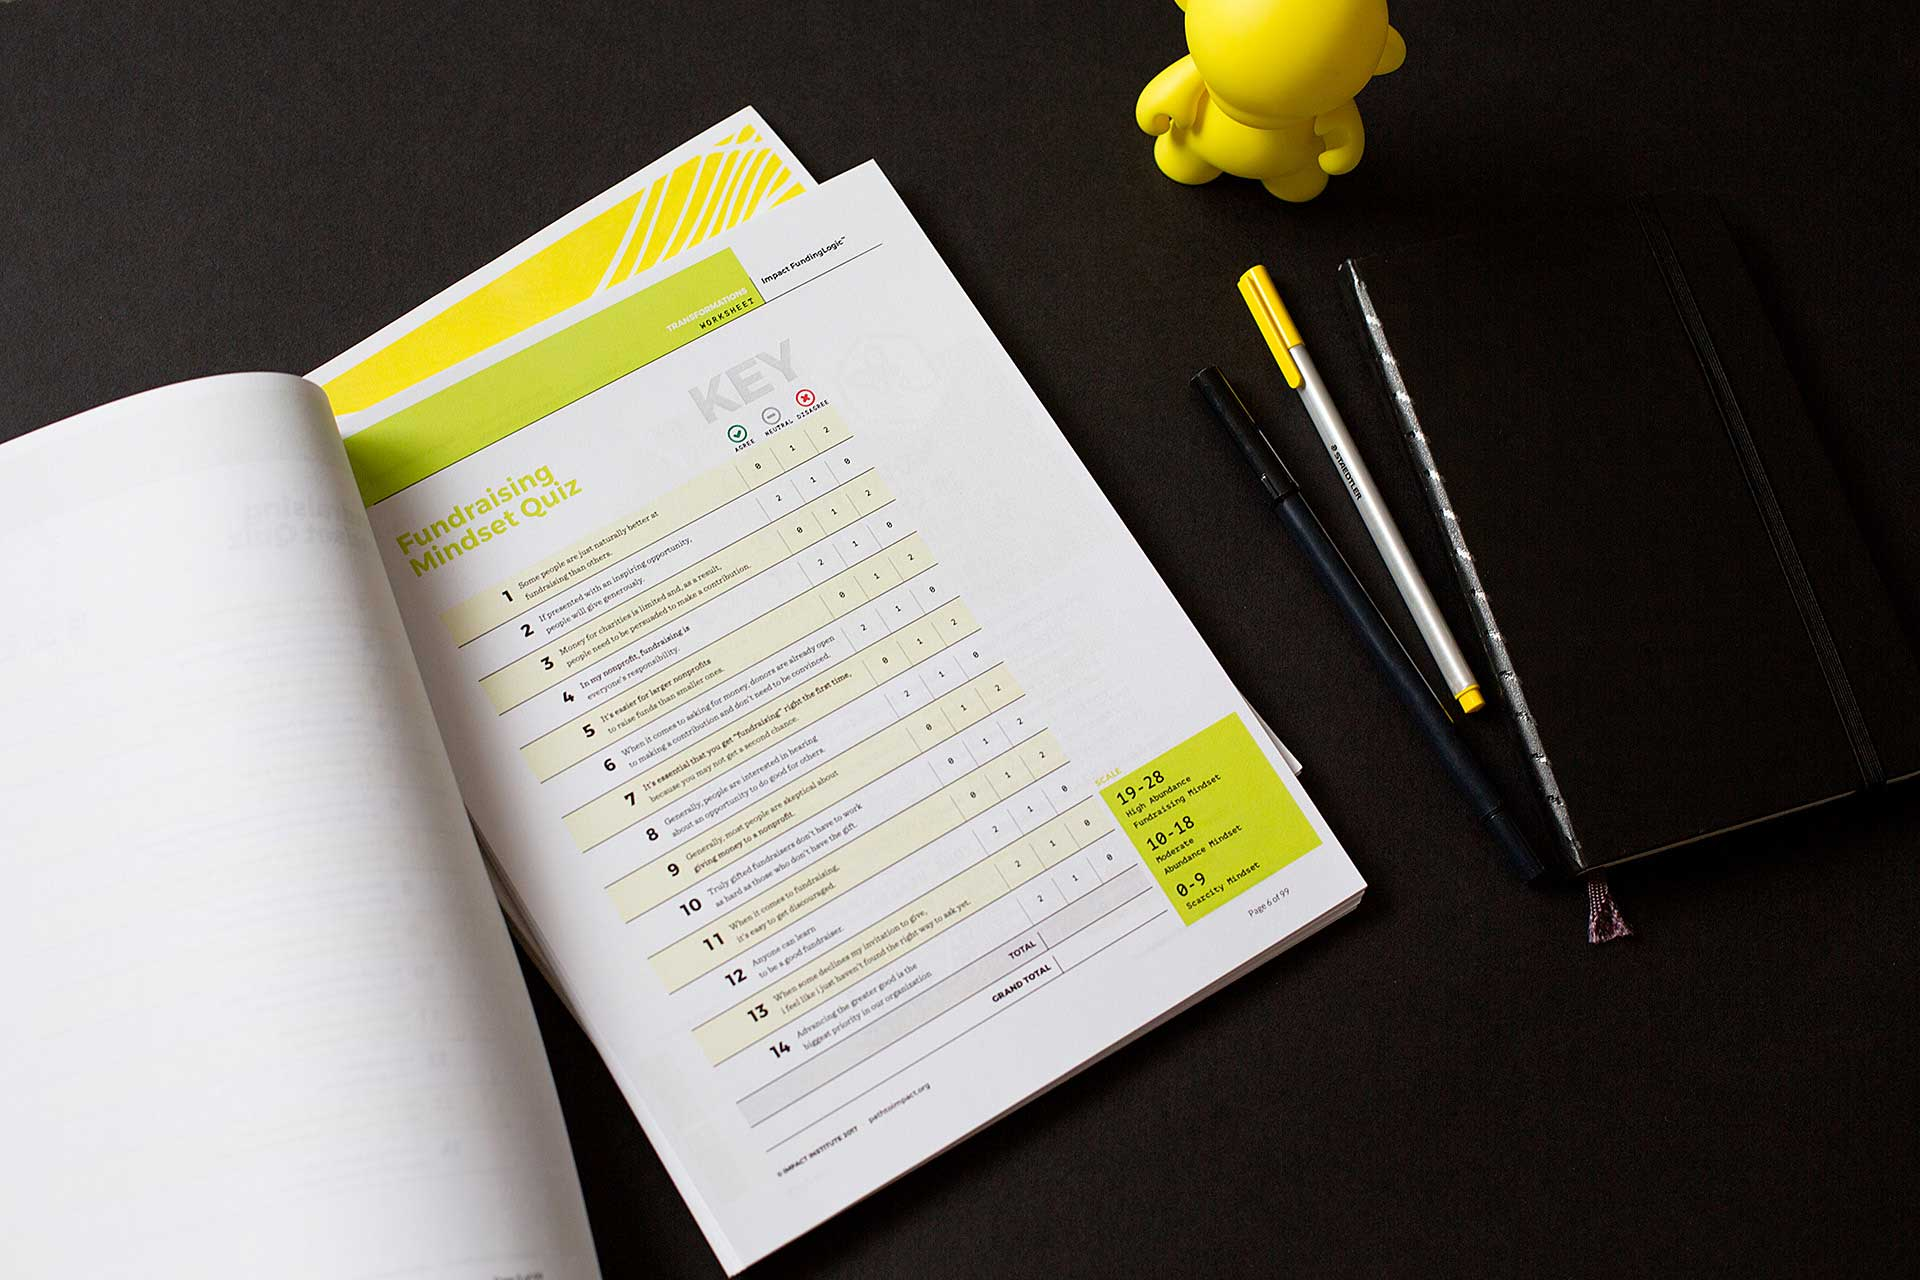 FundingLogic printed booklet open to a worksheet page next to pens and a yellow munny figurine on a black background